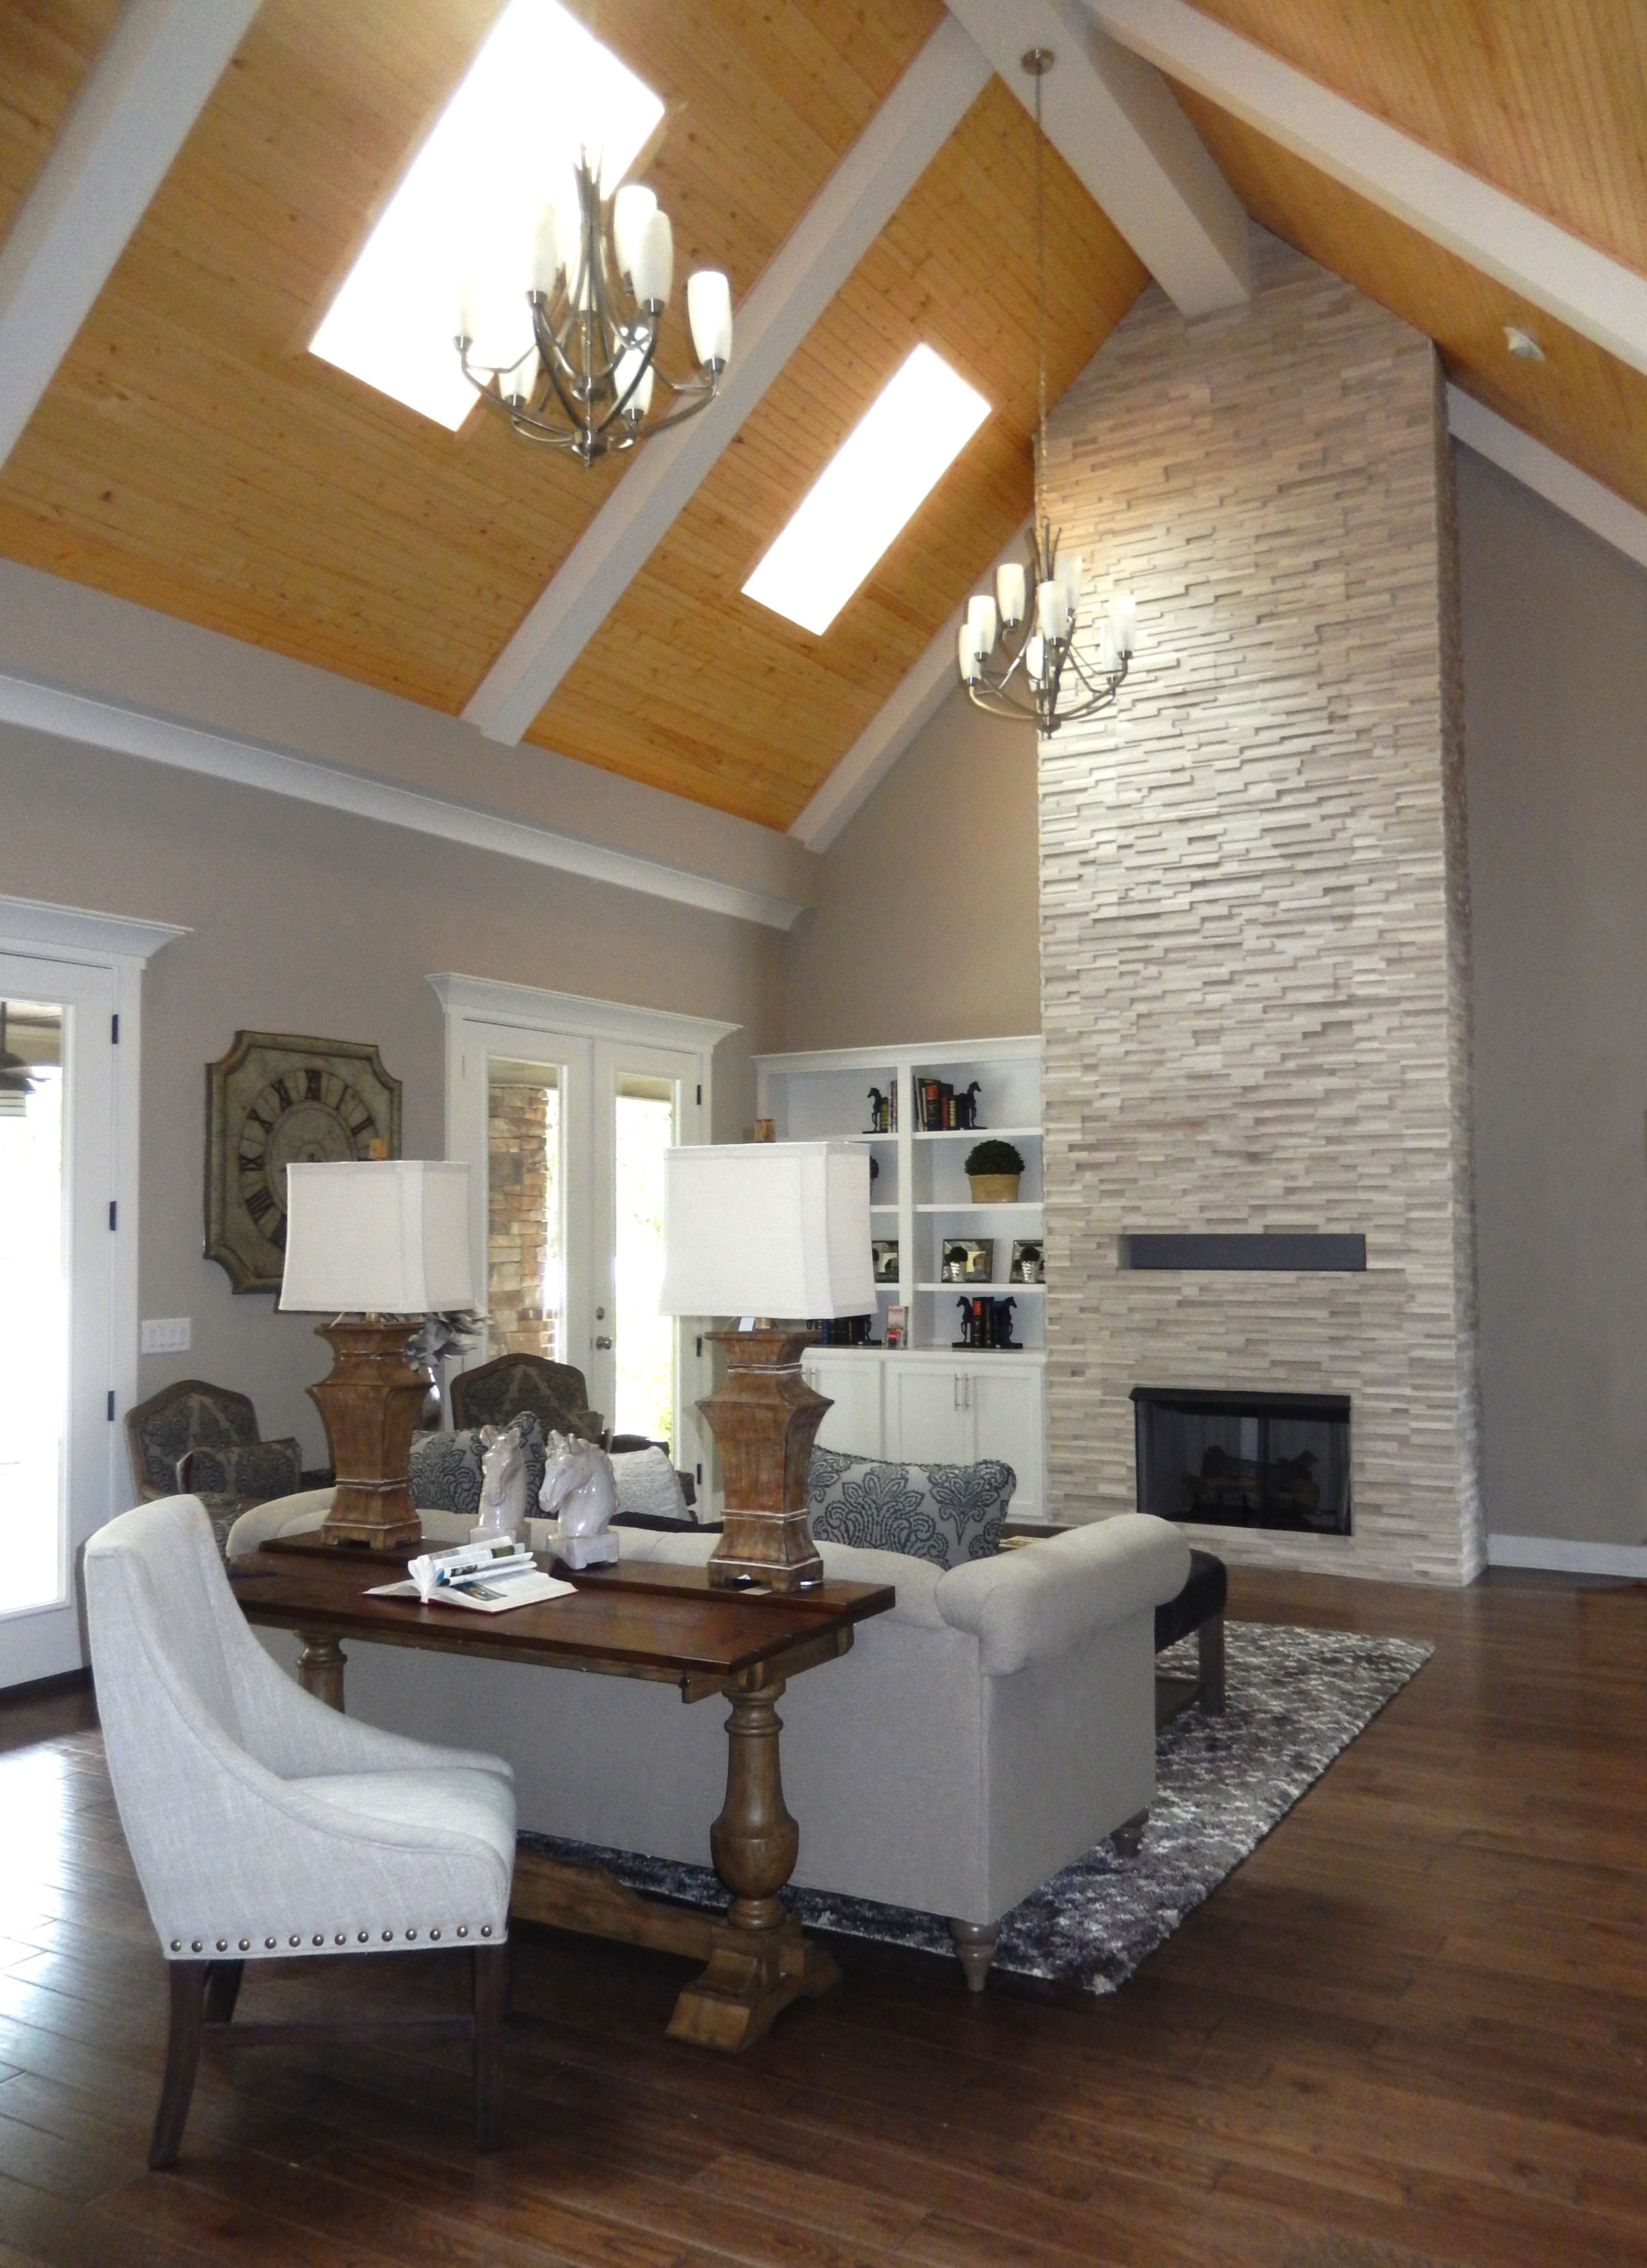 Whitestone Fireplace with Cathedral Ceiling